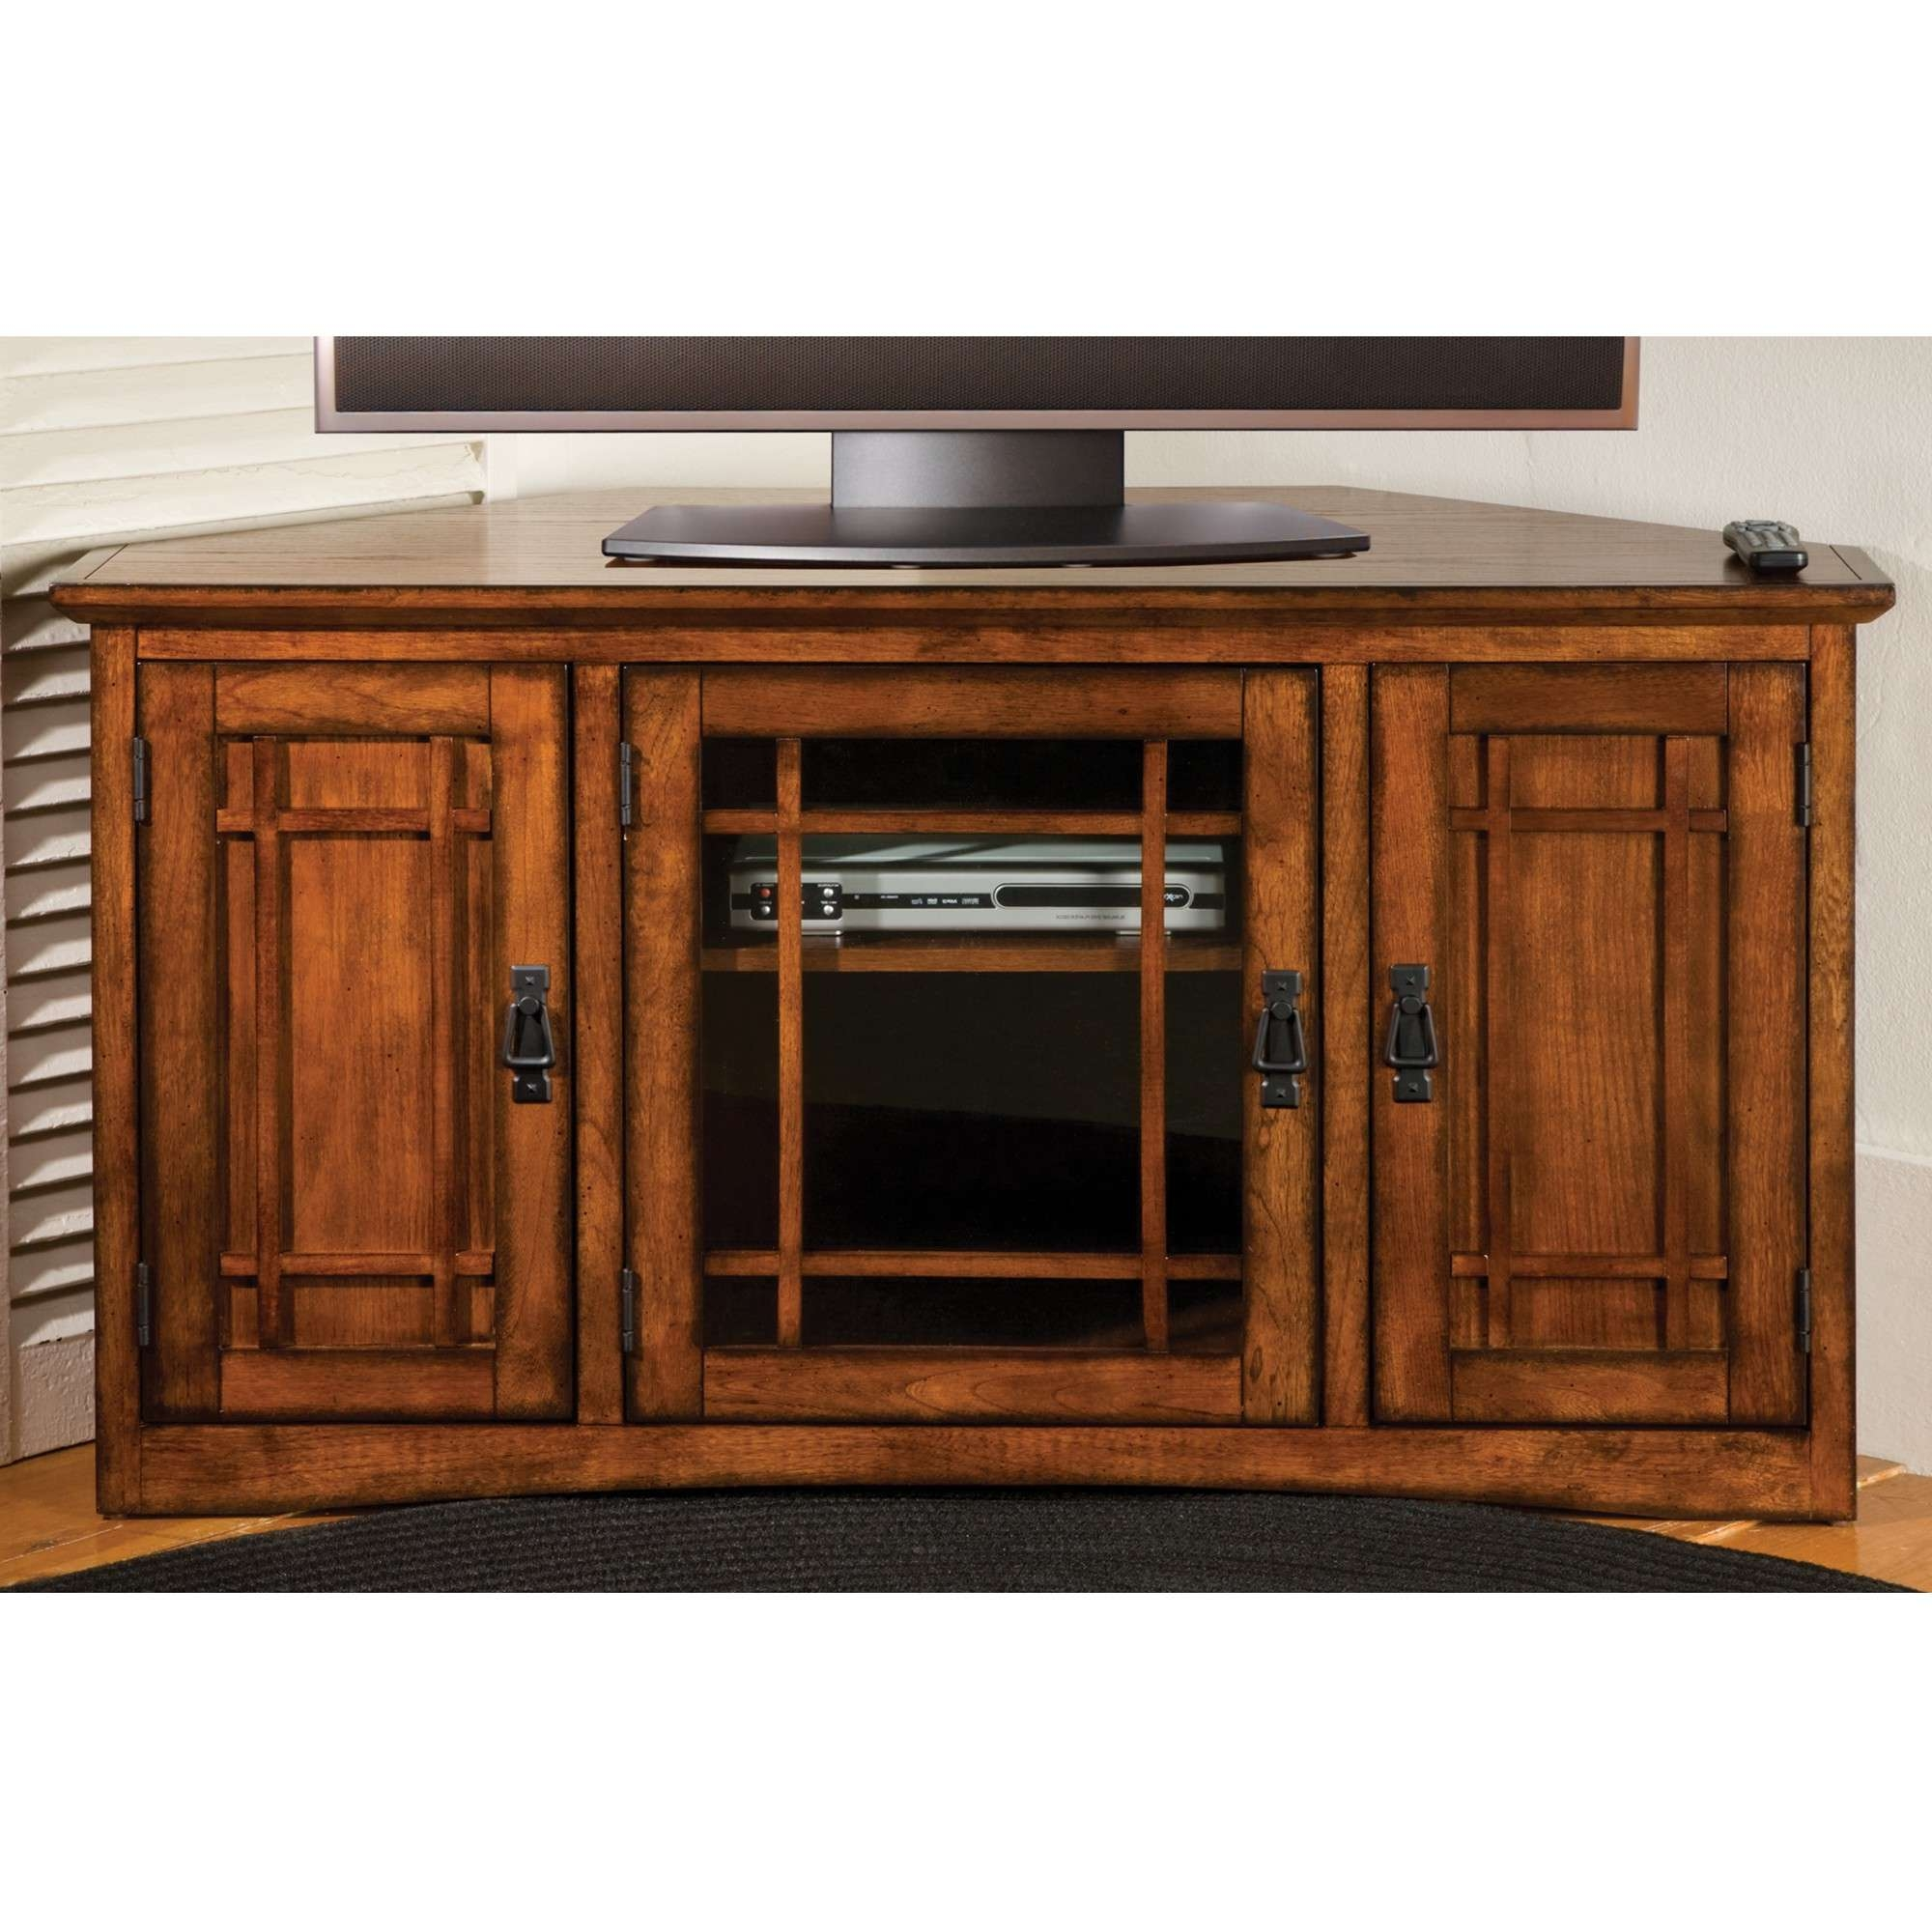 Mission Corner Tv Cabinet | Sturbridge Yankee Workshop With Regard To Small Corner Tv Cabinets (View 10 of 20)